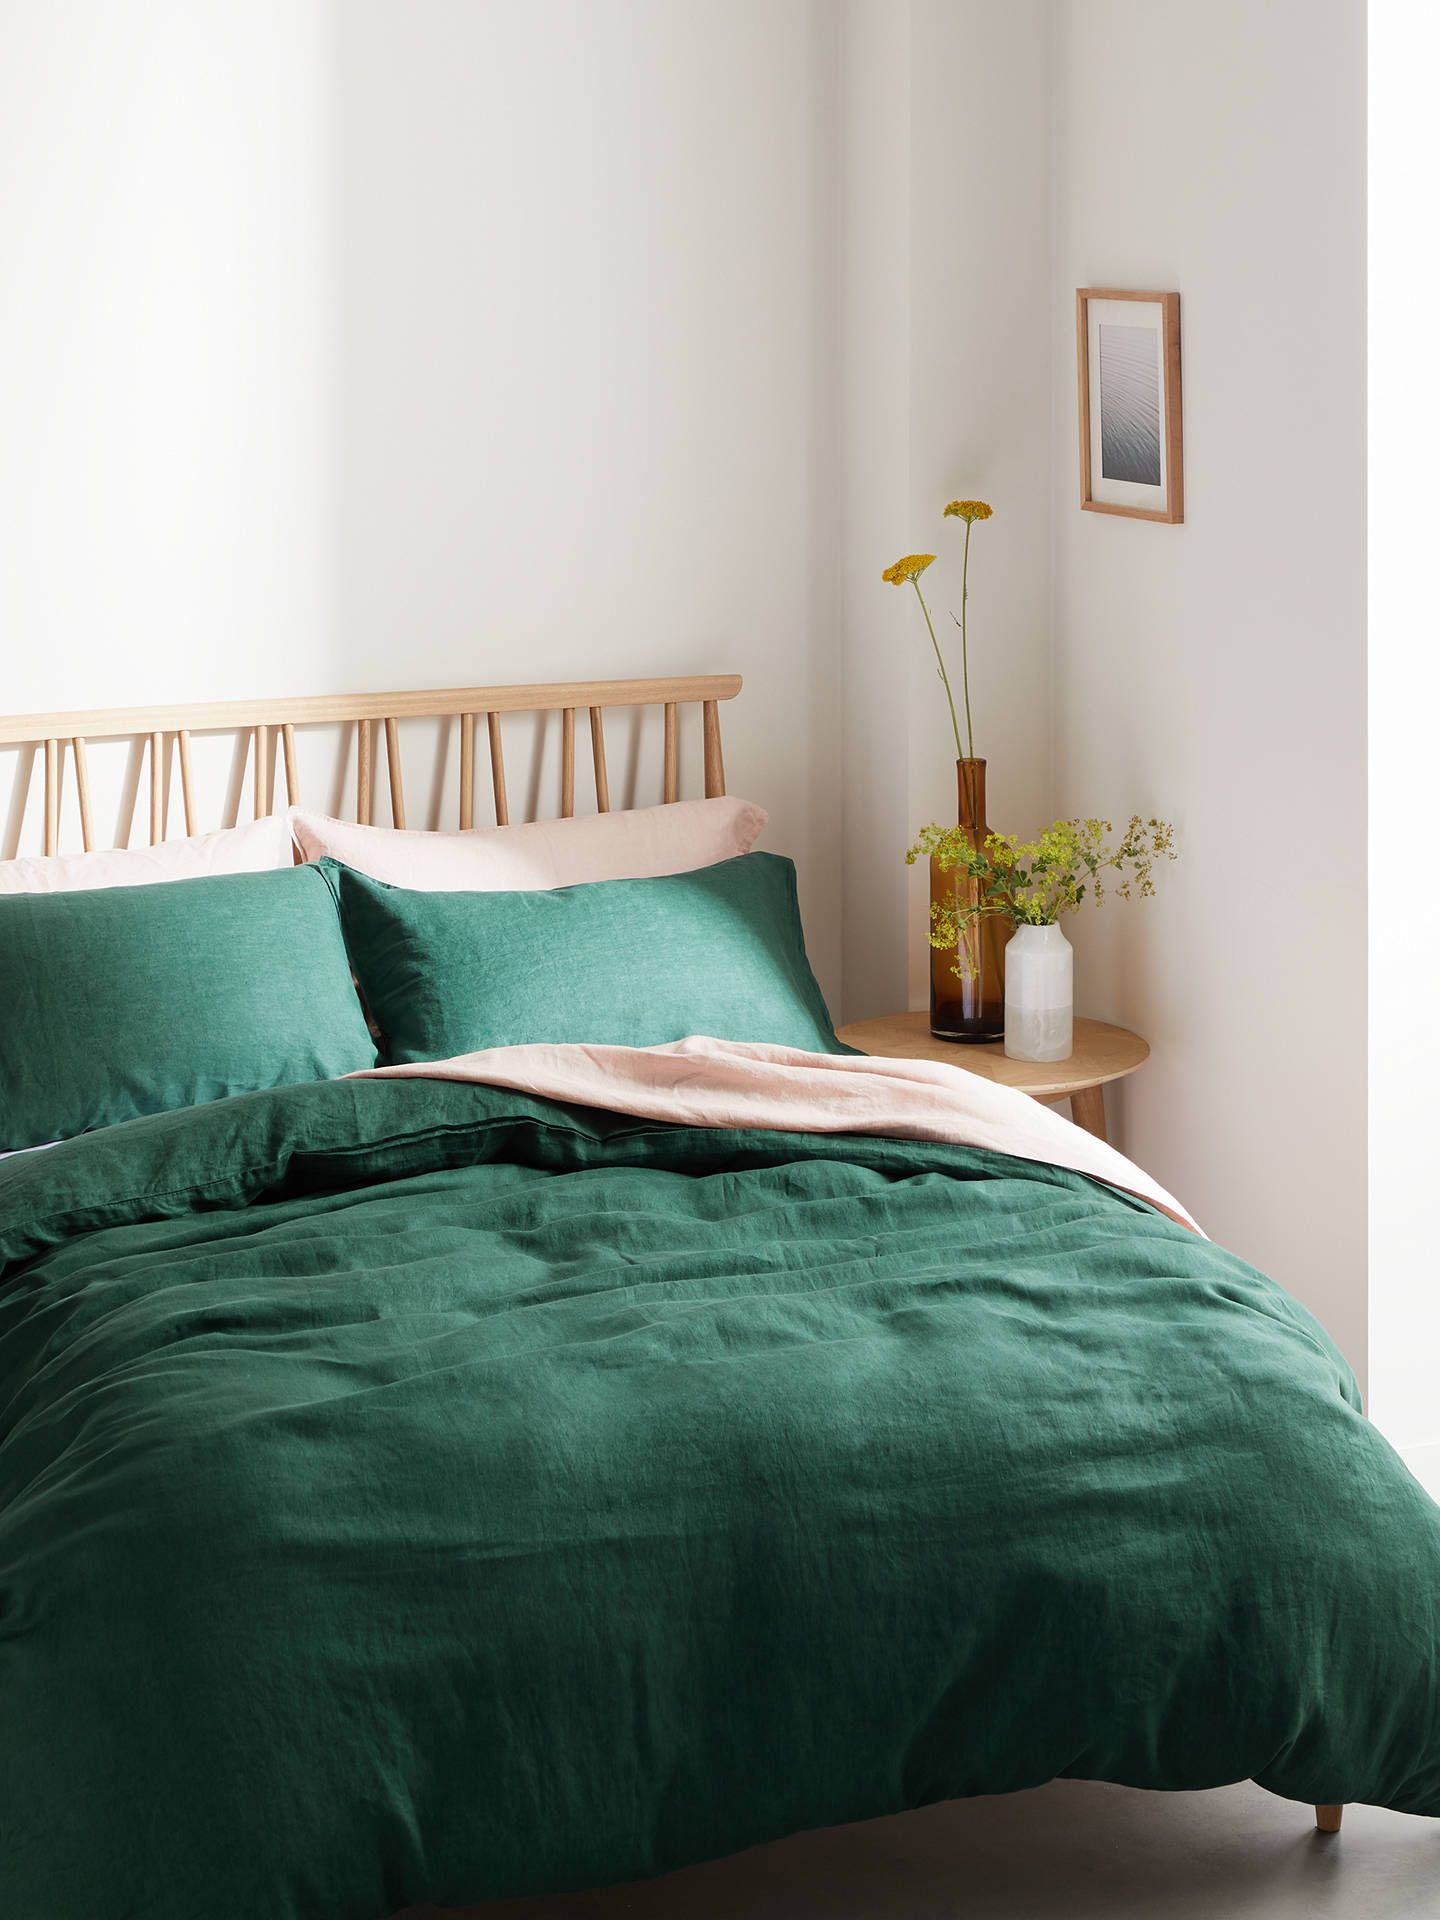 John Lewis Partners 100 Linen Bedding Yellow In 2020 Green Comforter Bedroom Green Comforter Bedroom Color Schemes